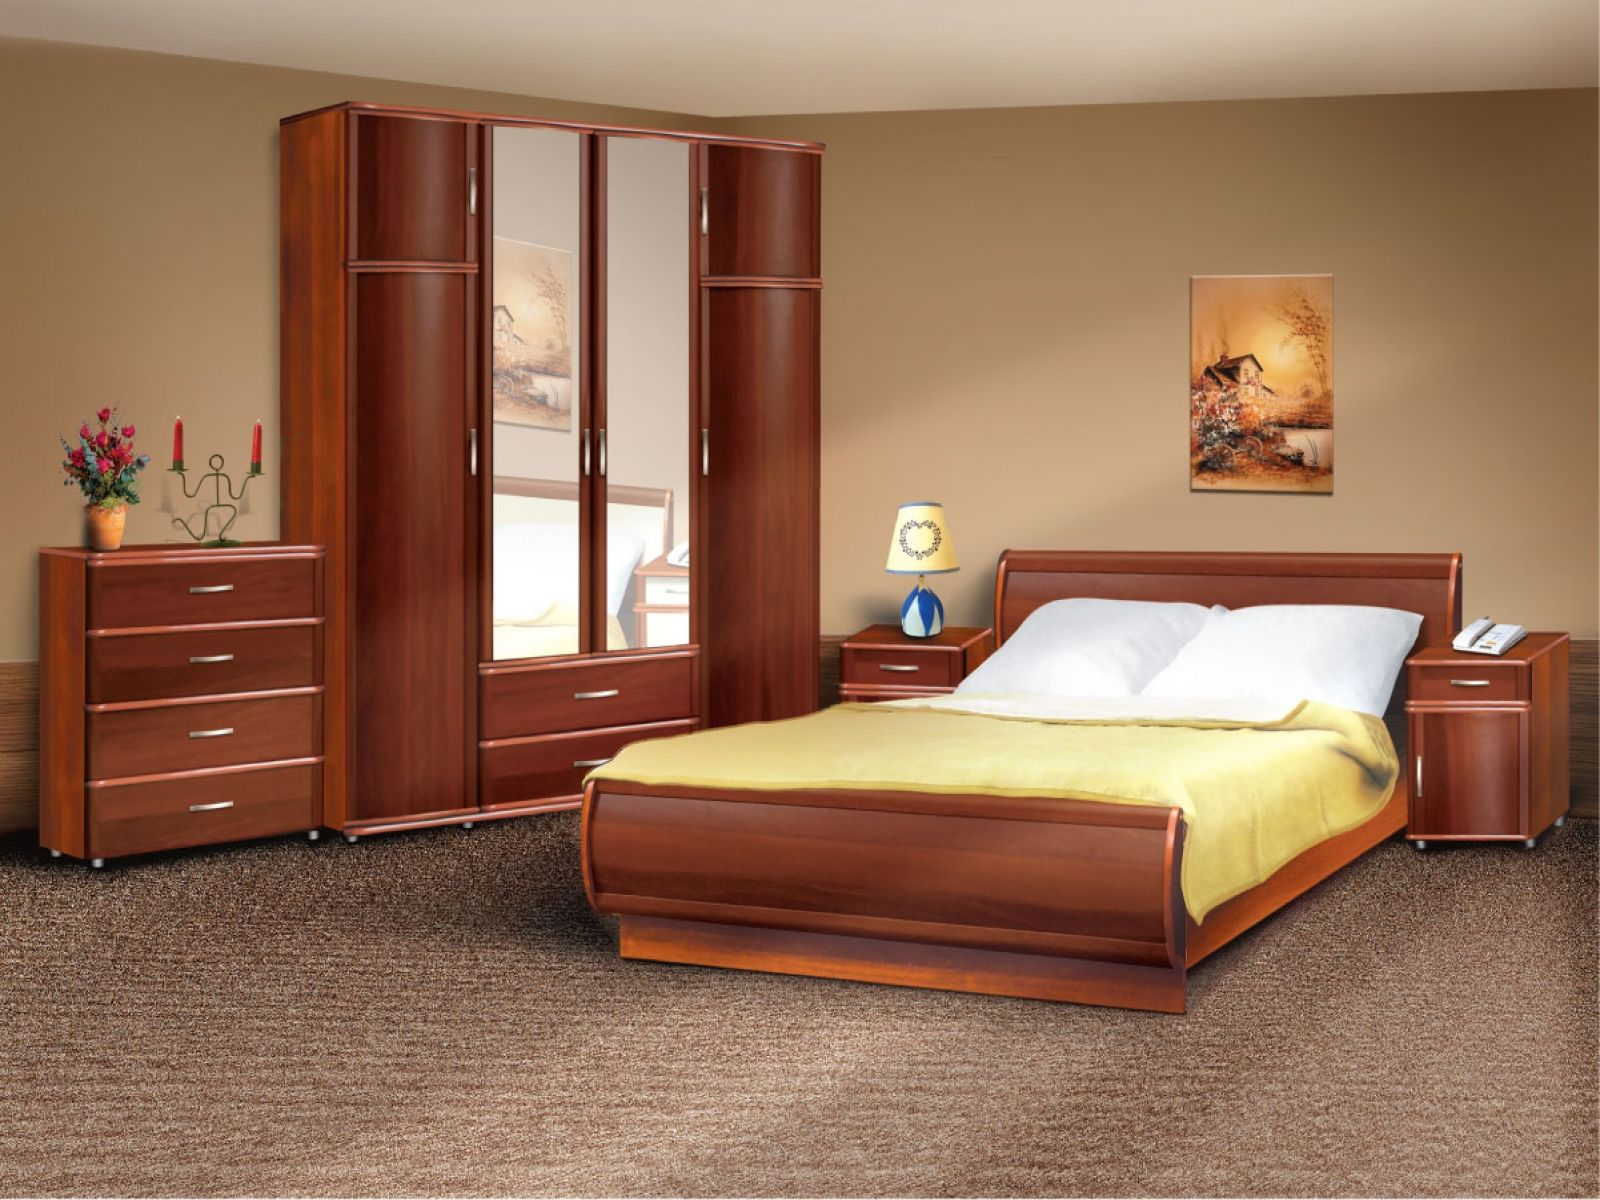 Modern Wood Bedroom Furniture in vogue arc wooden headboard king size bed and double mirror door